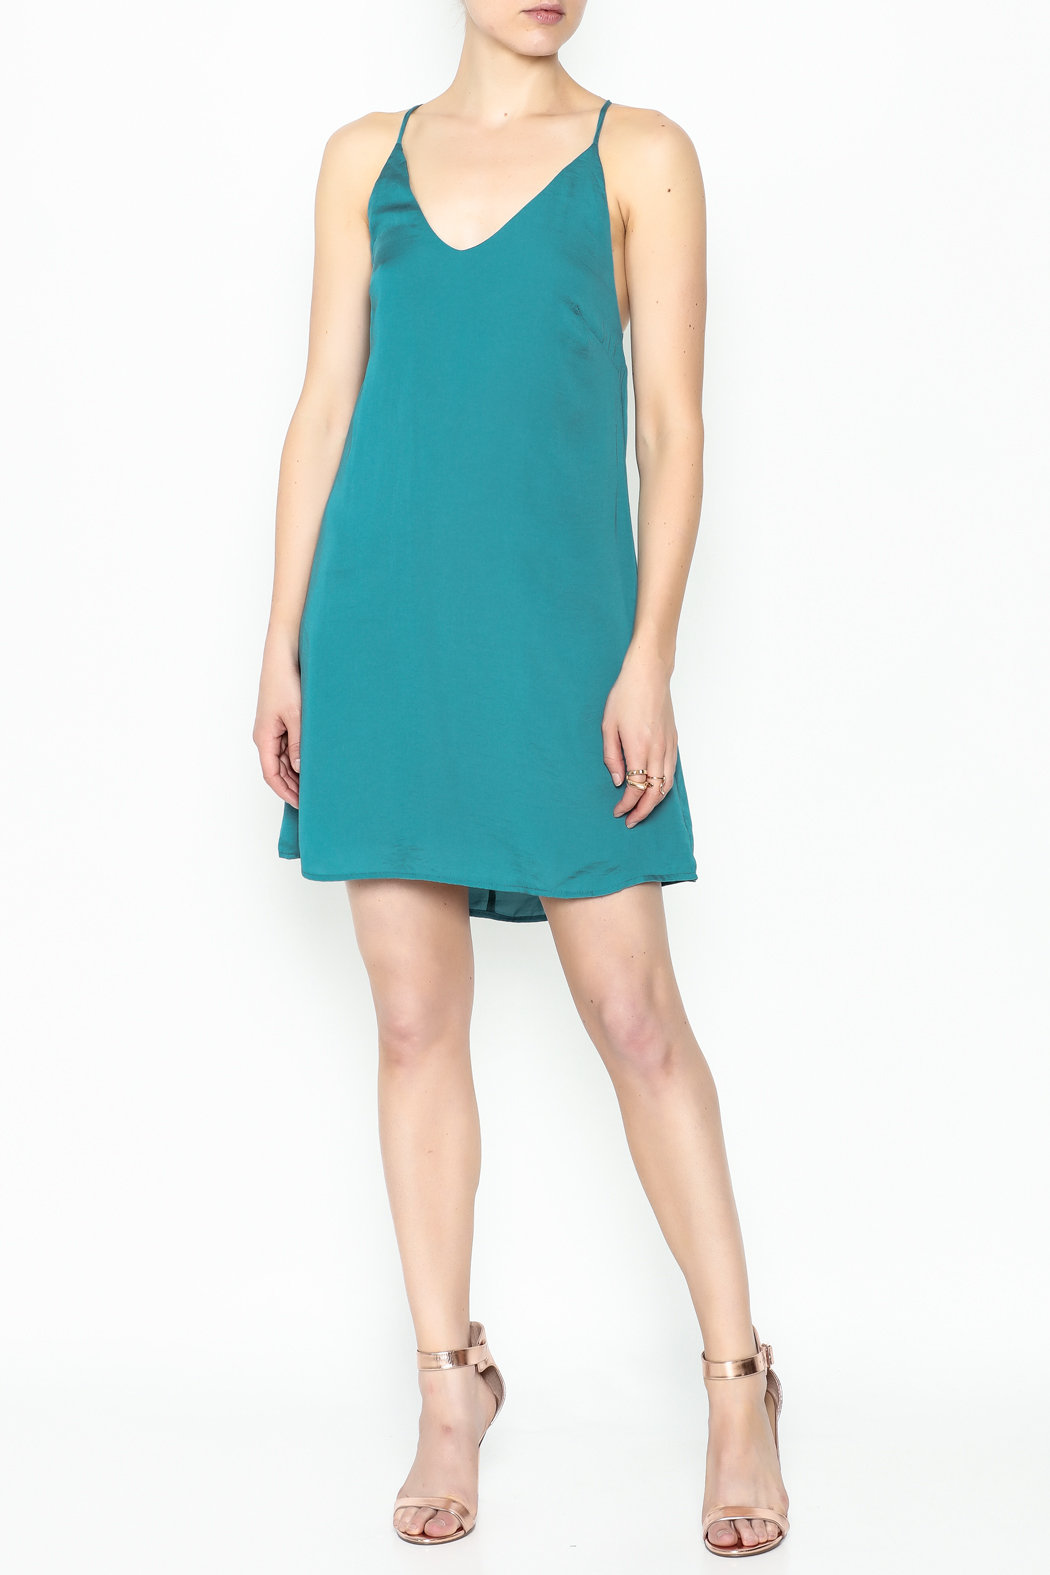 AAKAA Teal Satin Dress - Side Cropped Image